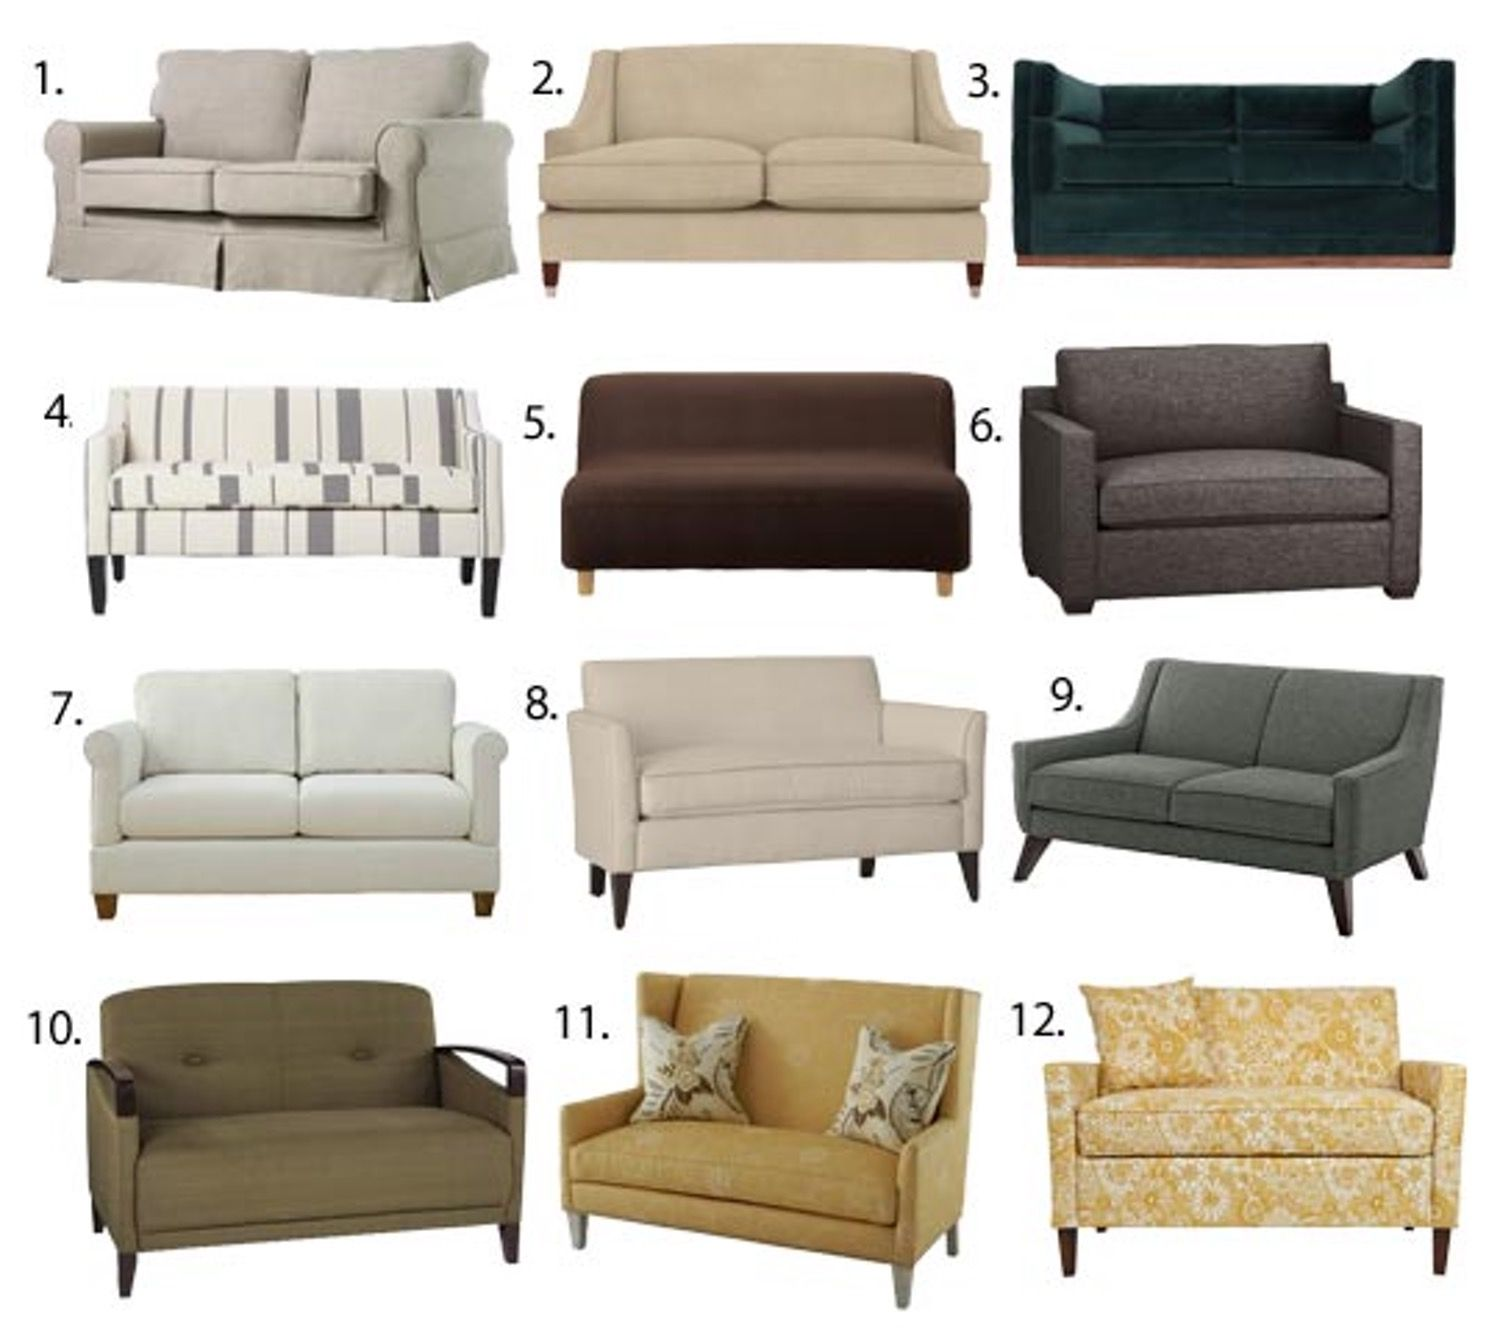 Small Space Seating Sofas Loveseats Under 60 Inches Wide Small